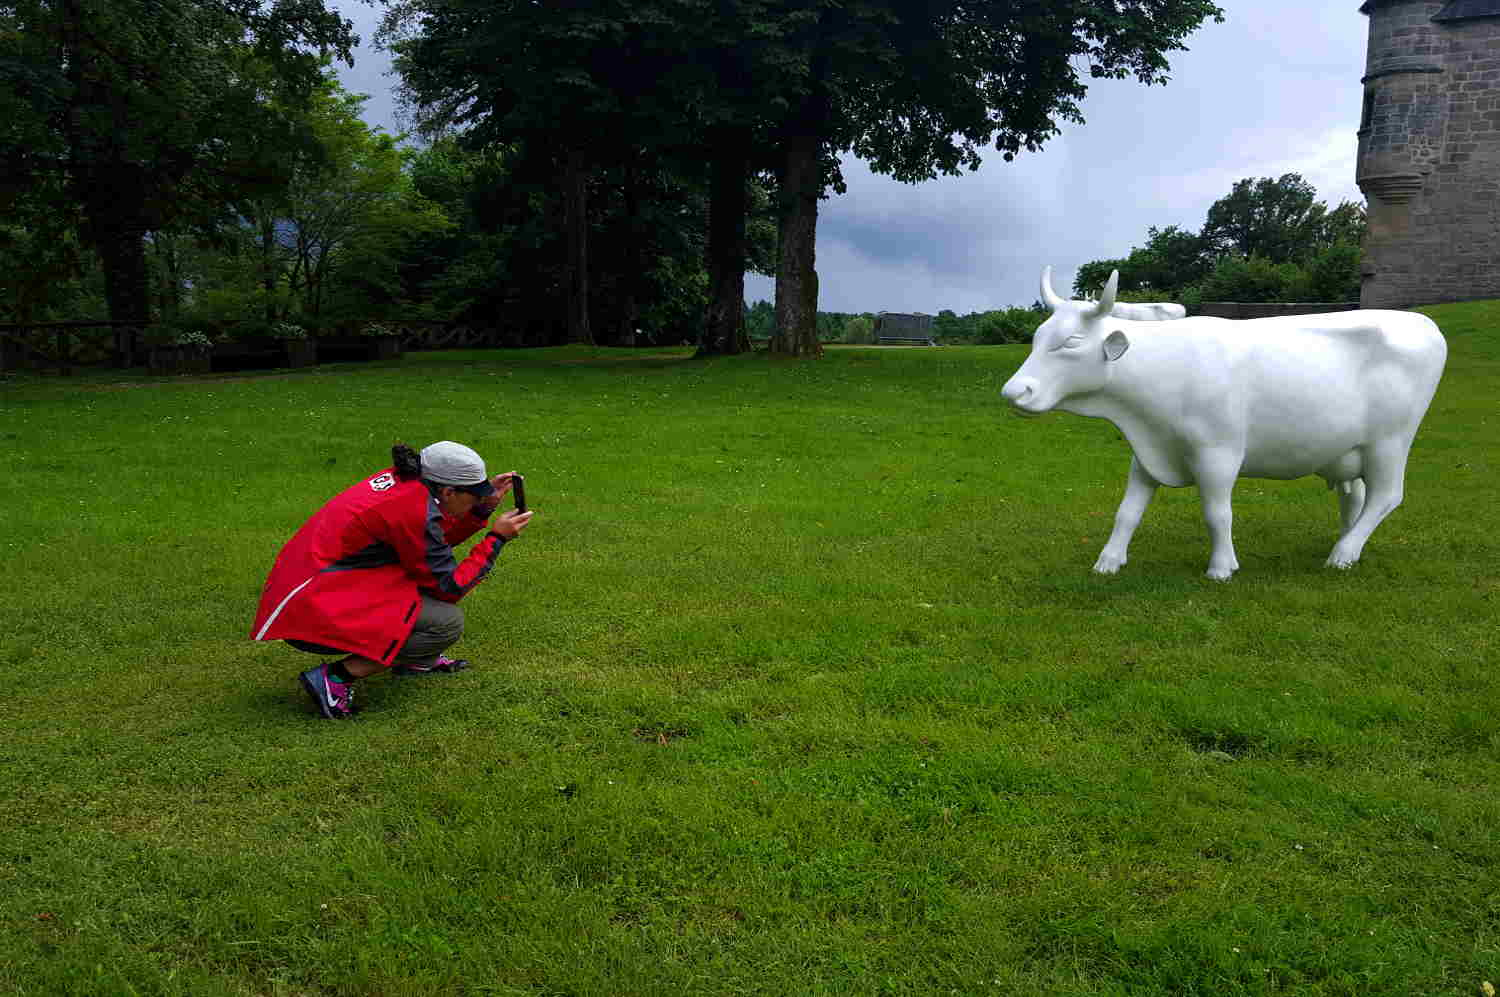 Cow photography